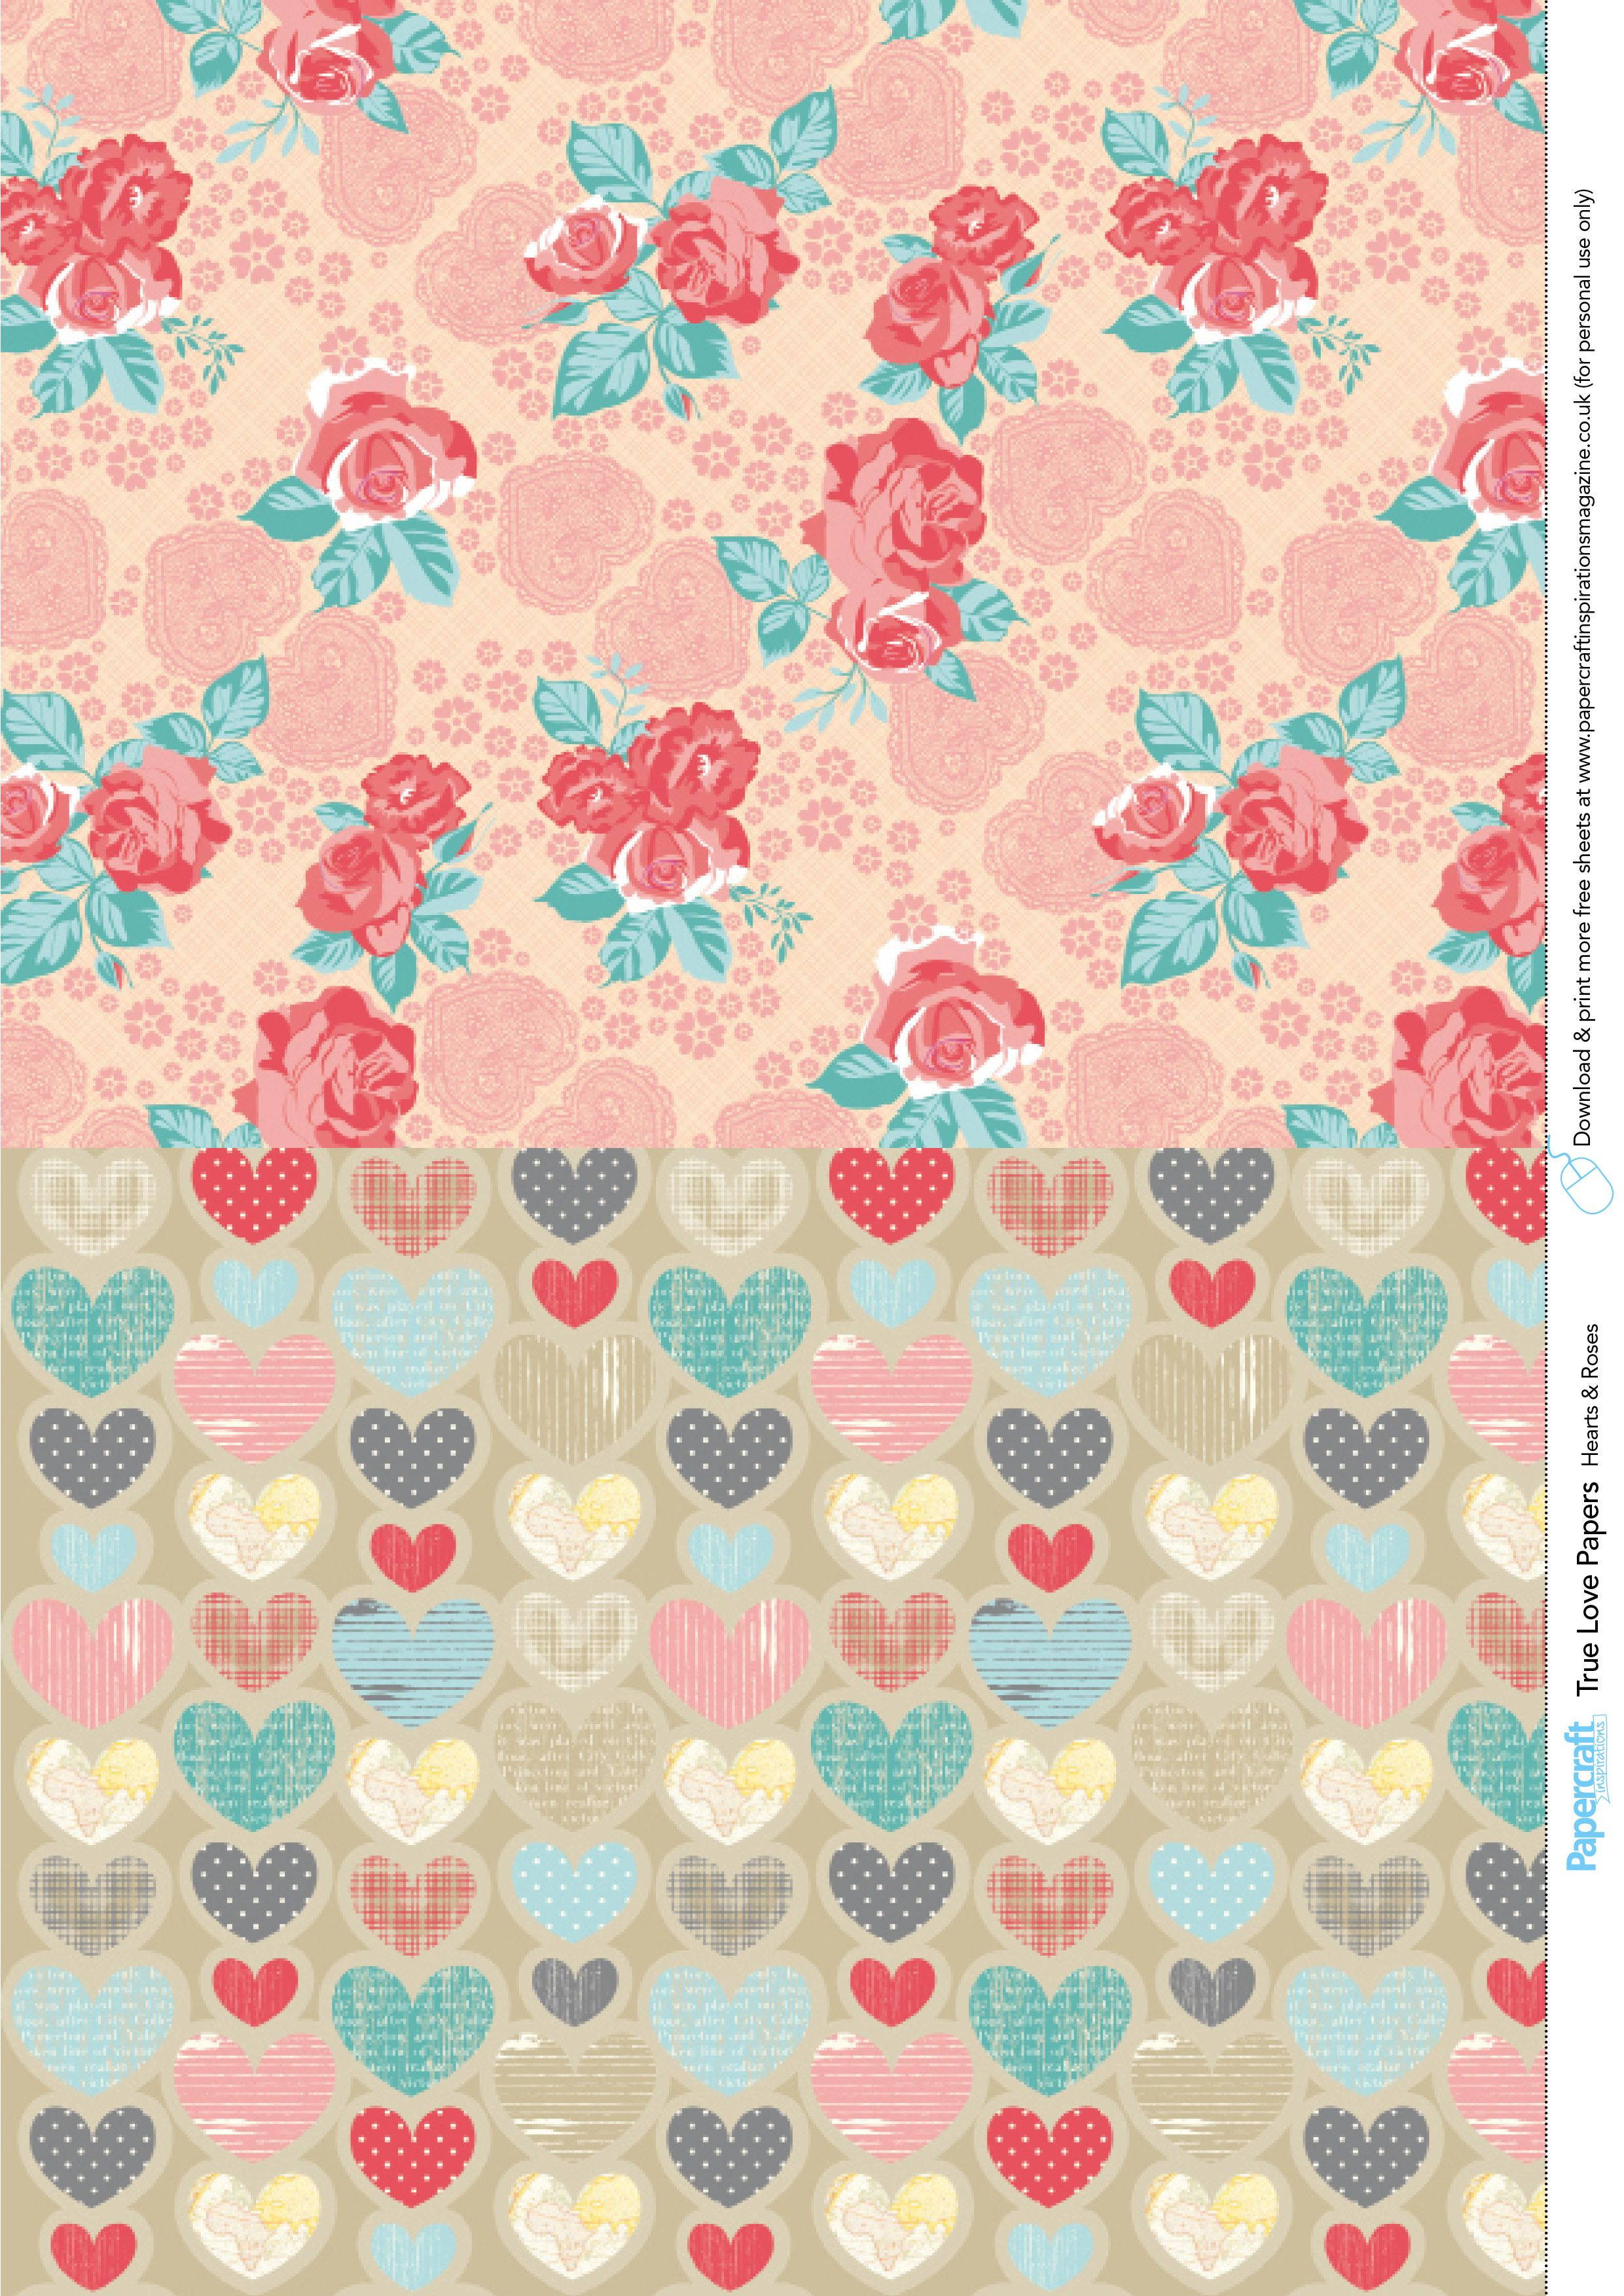 Valentine's Day Free Printable Papers | Free Printables | Digital - Free Printable Pattern Paper Sheets